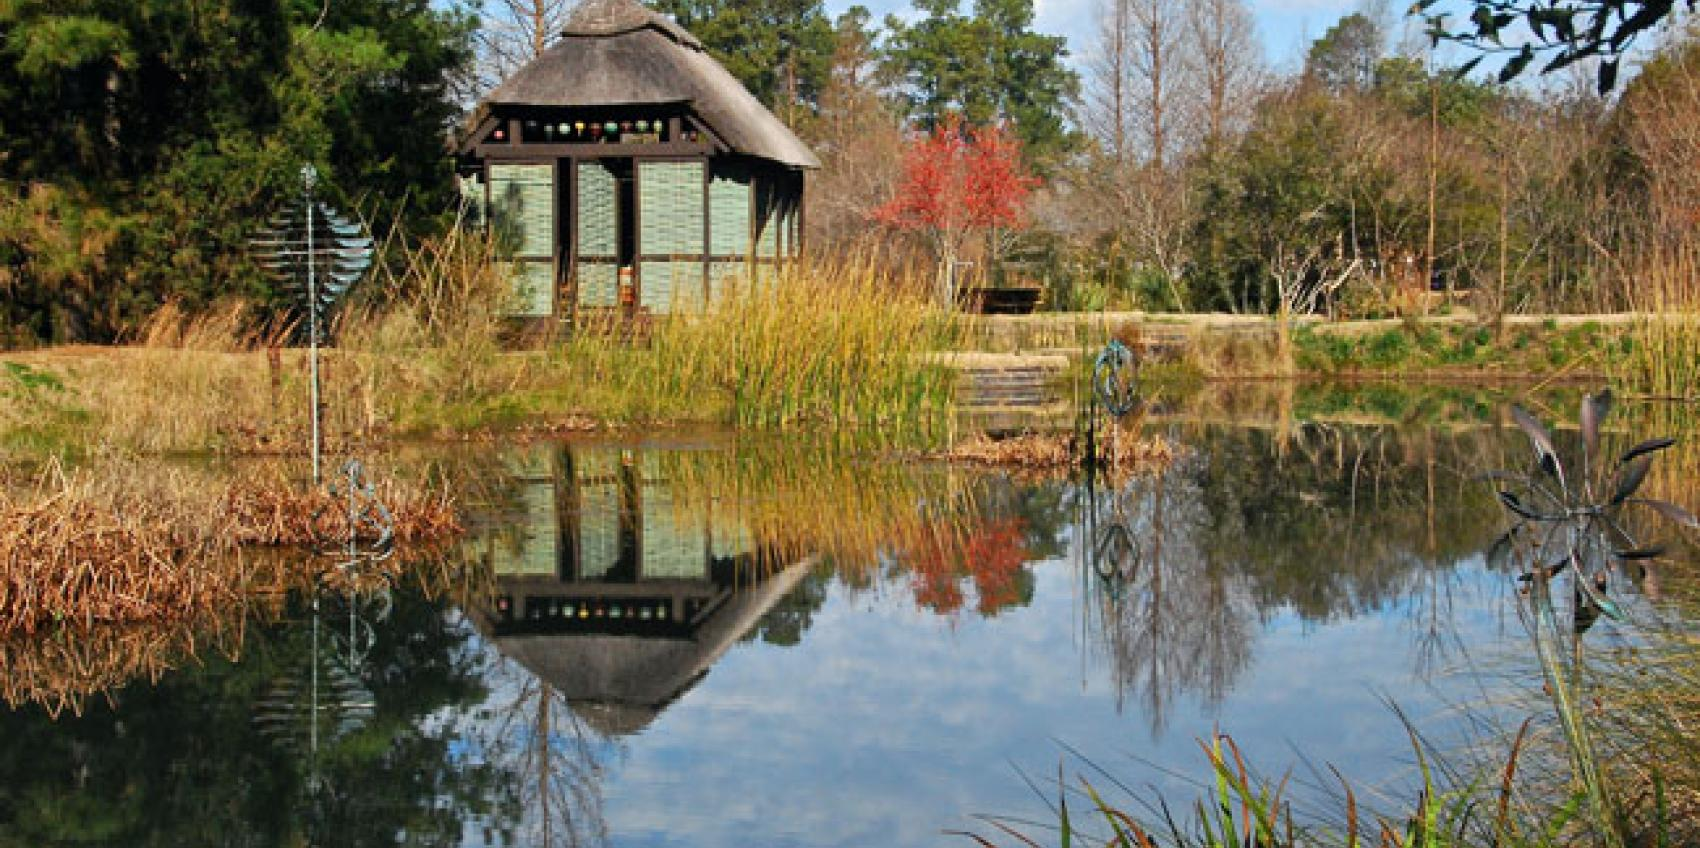 Moore Farms Botanical Garden | American Public Gardens Association